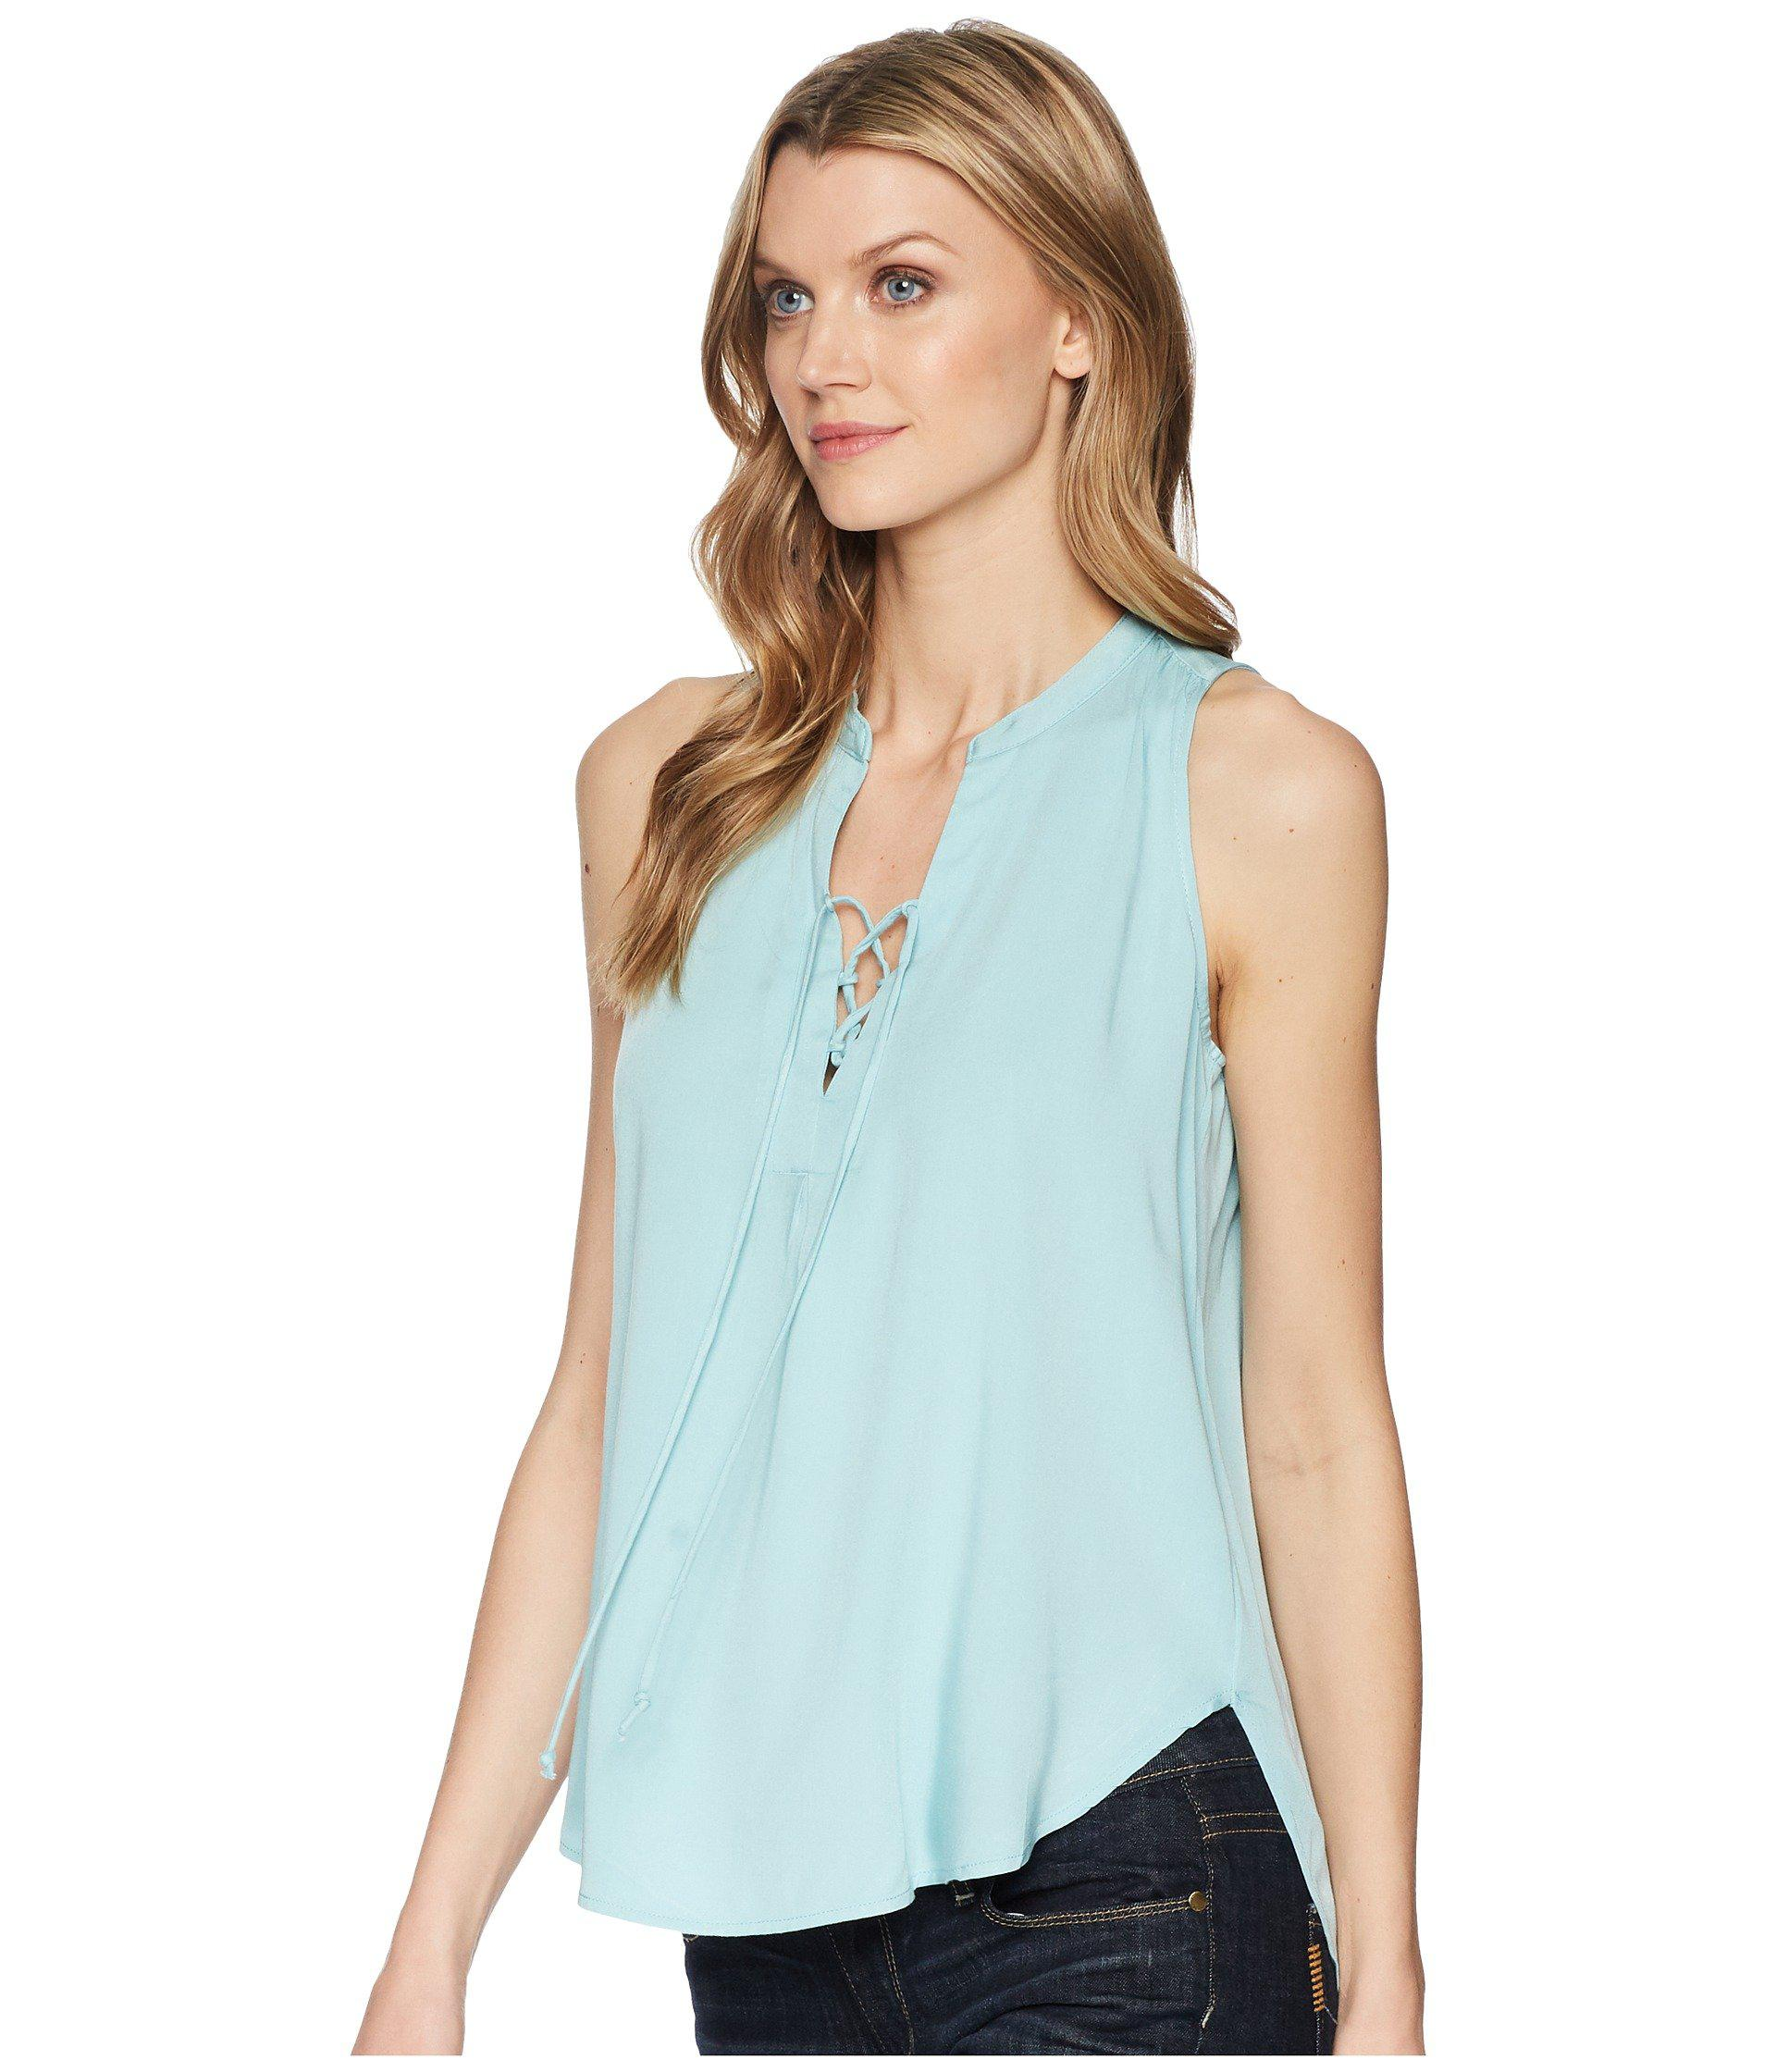 d2e570ce8f434 Lyst - Stetson 1580 Rayon Crepe Laced Loose Tank Top in Blue - Save 27%